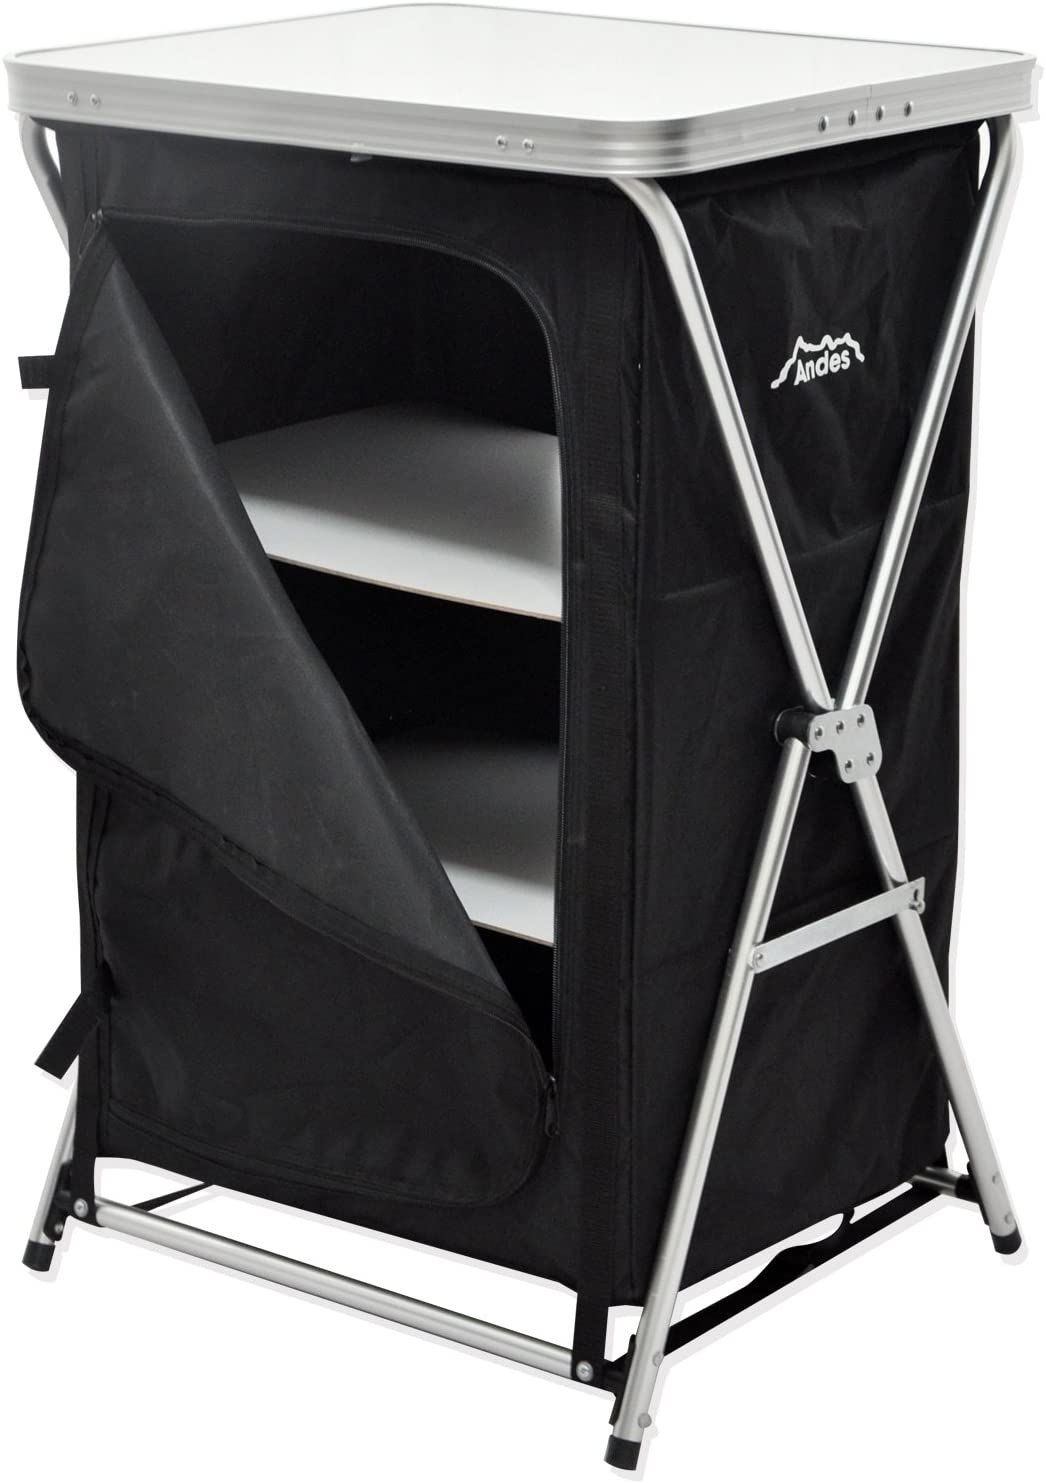 Andes Foldable 3 Shelf Camping Cabinet